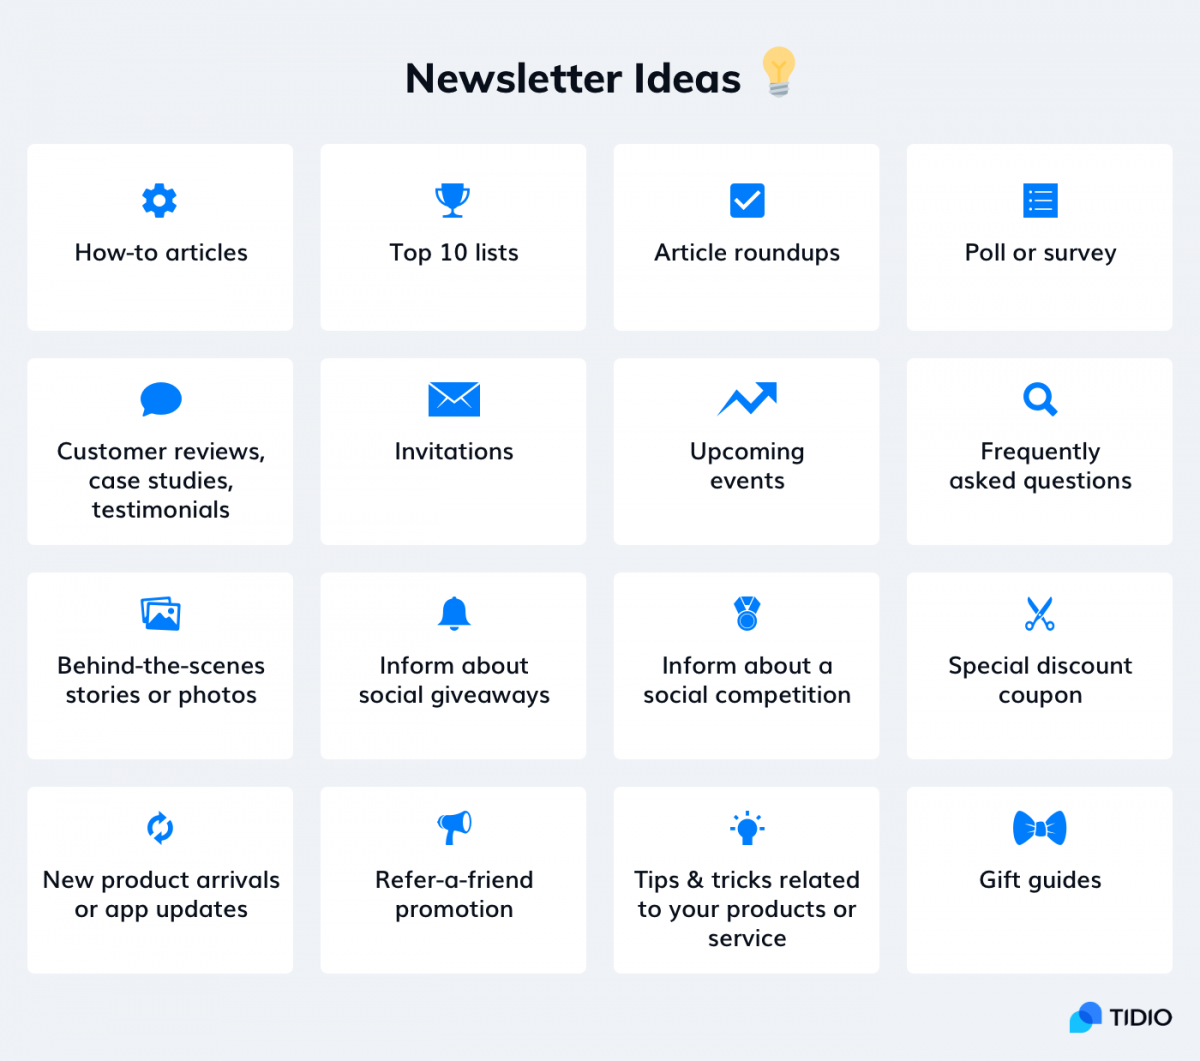 The best newsletter ideas